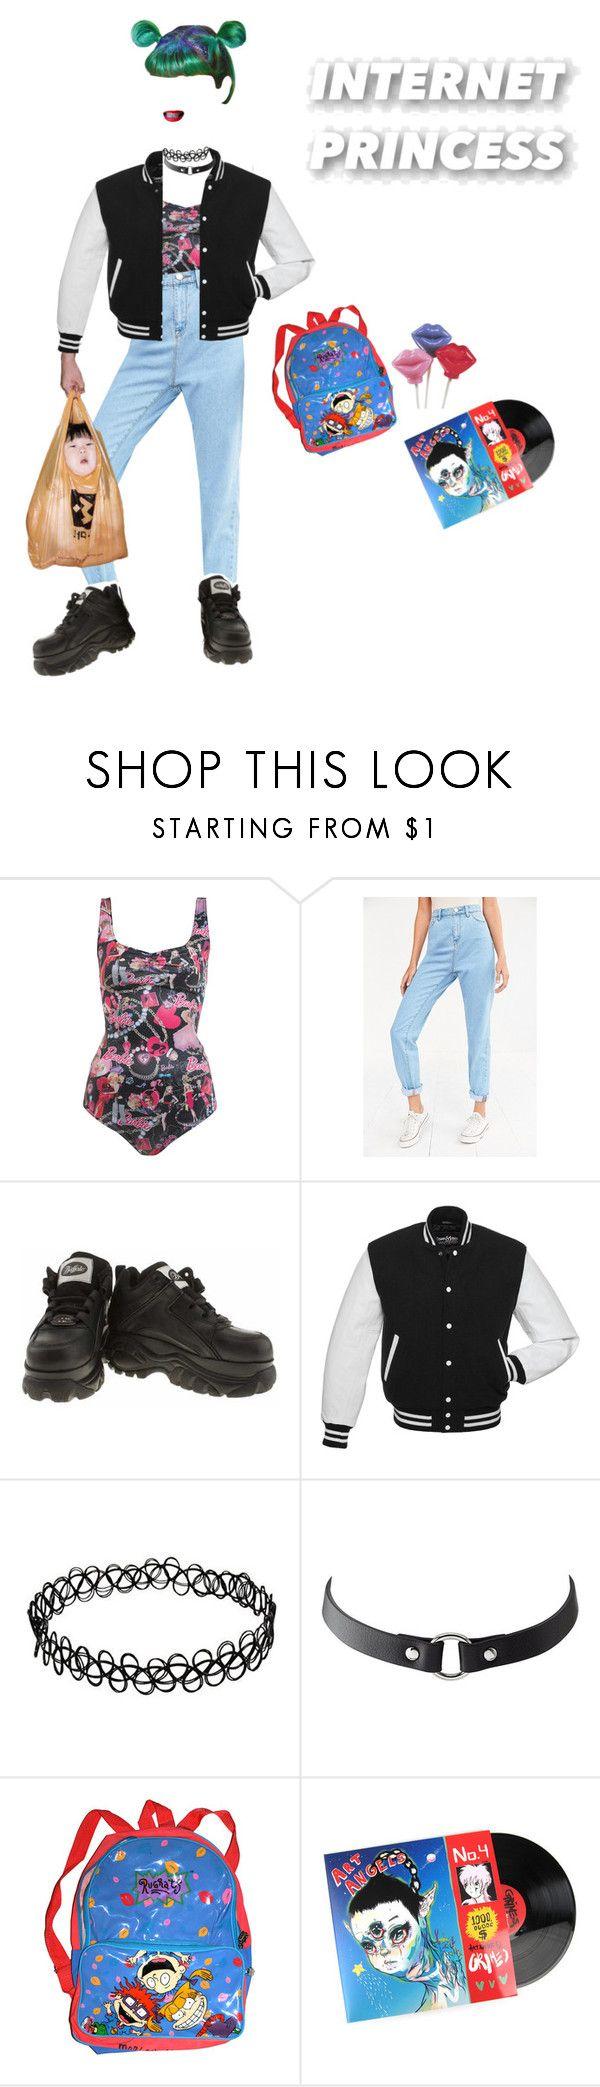 """WGG - Claw"" by smartgirlzrock ❤ liked on Polyvore featuring beauty, Miss Selfridge, BDG, CO, Charlotte Russe, Nickelodeon, clotheshavenogender, Weirdgirlsgangsgr and Weirdfriendssgr"